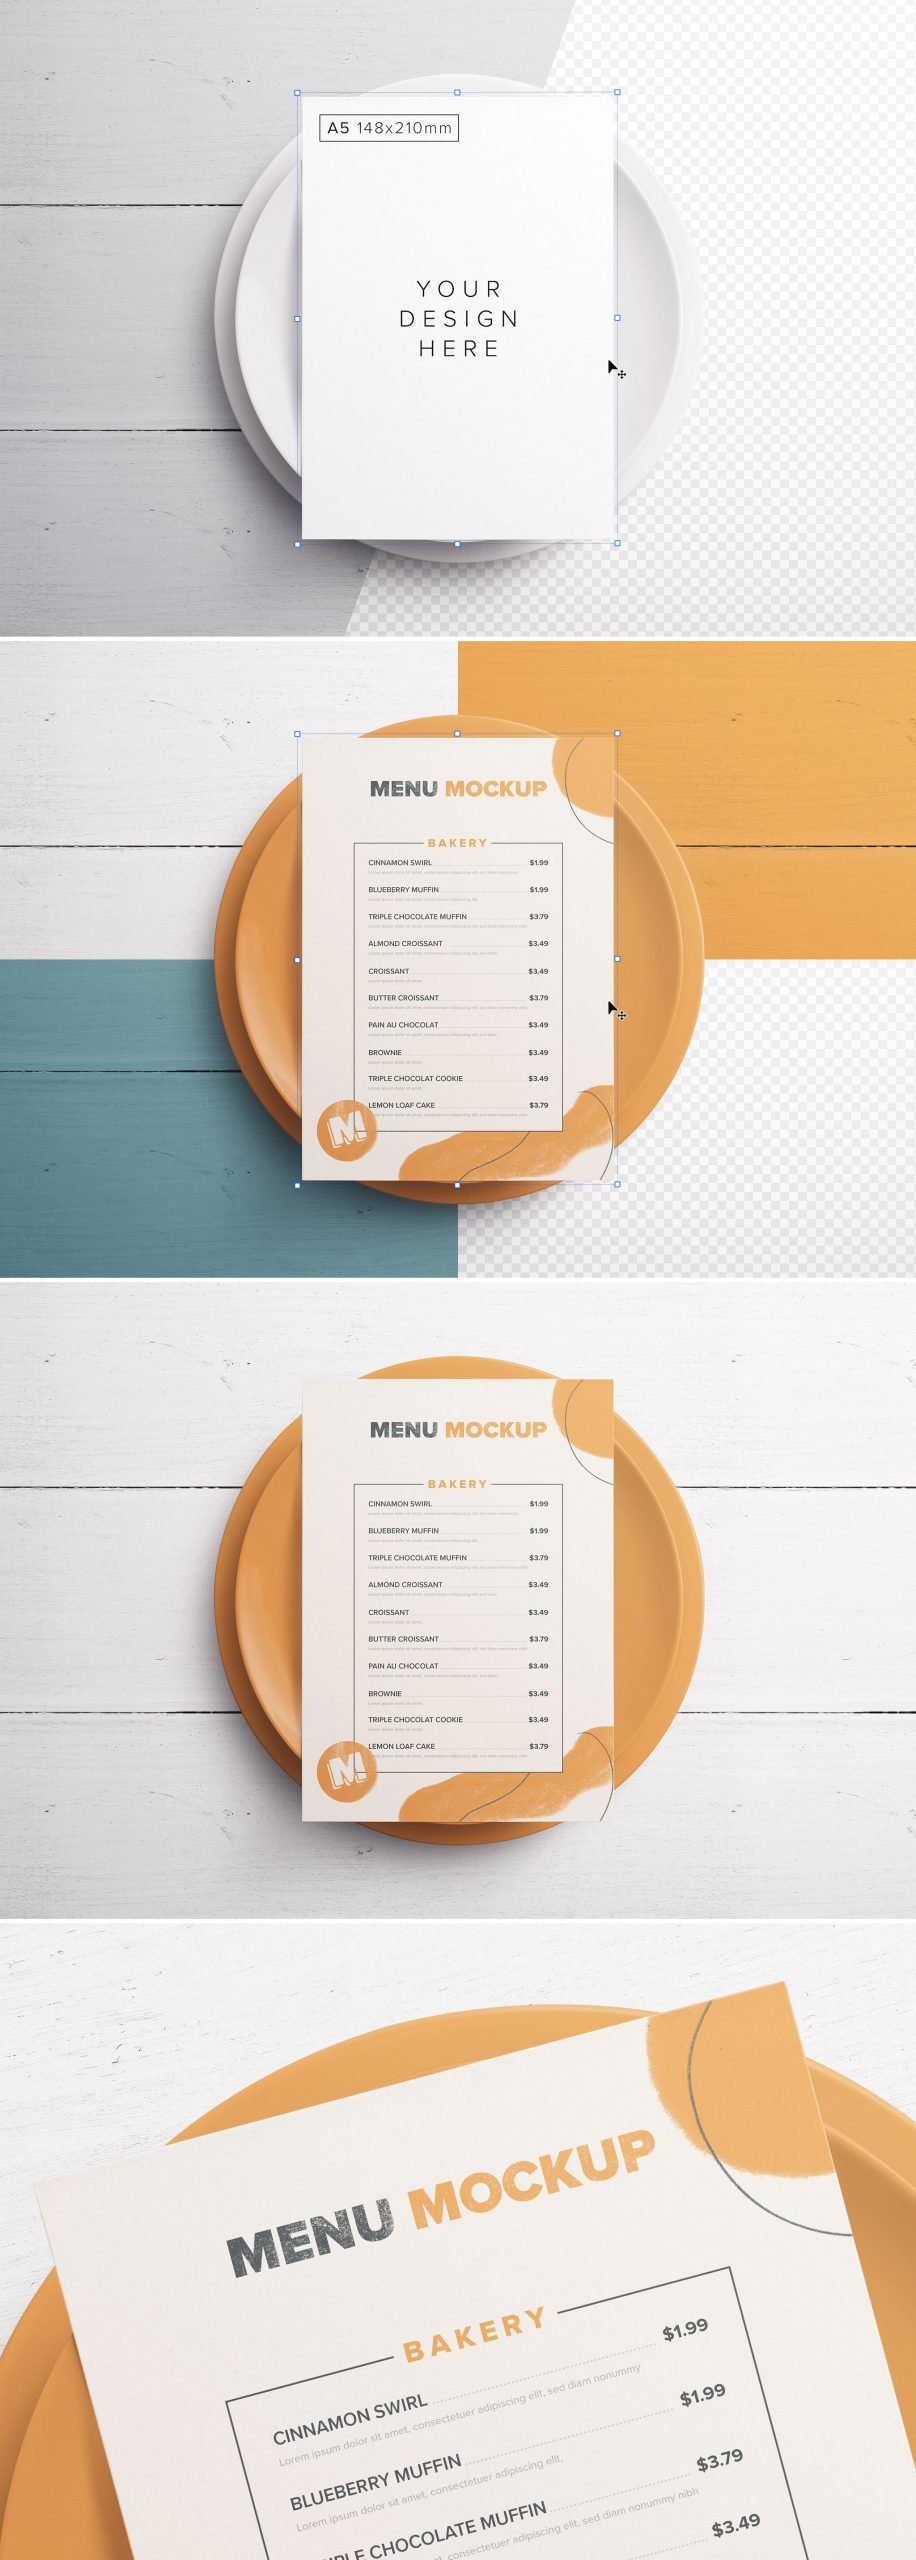 Table A5 Menu with Plates Preview scaled